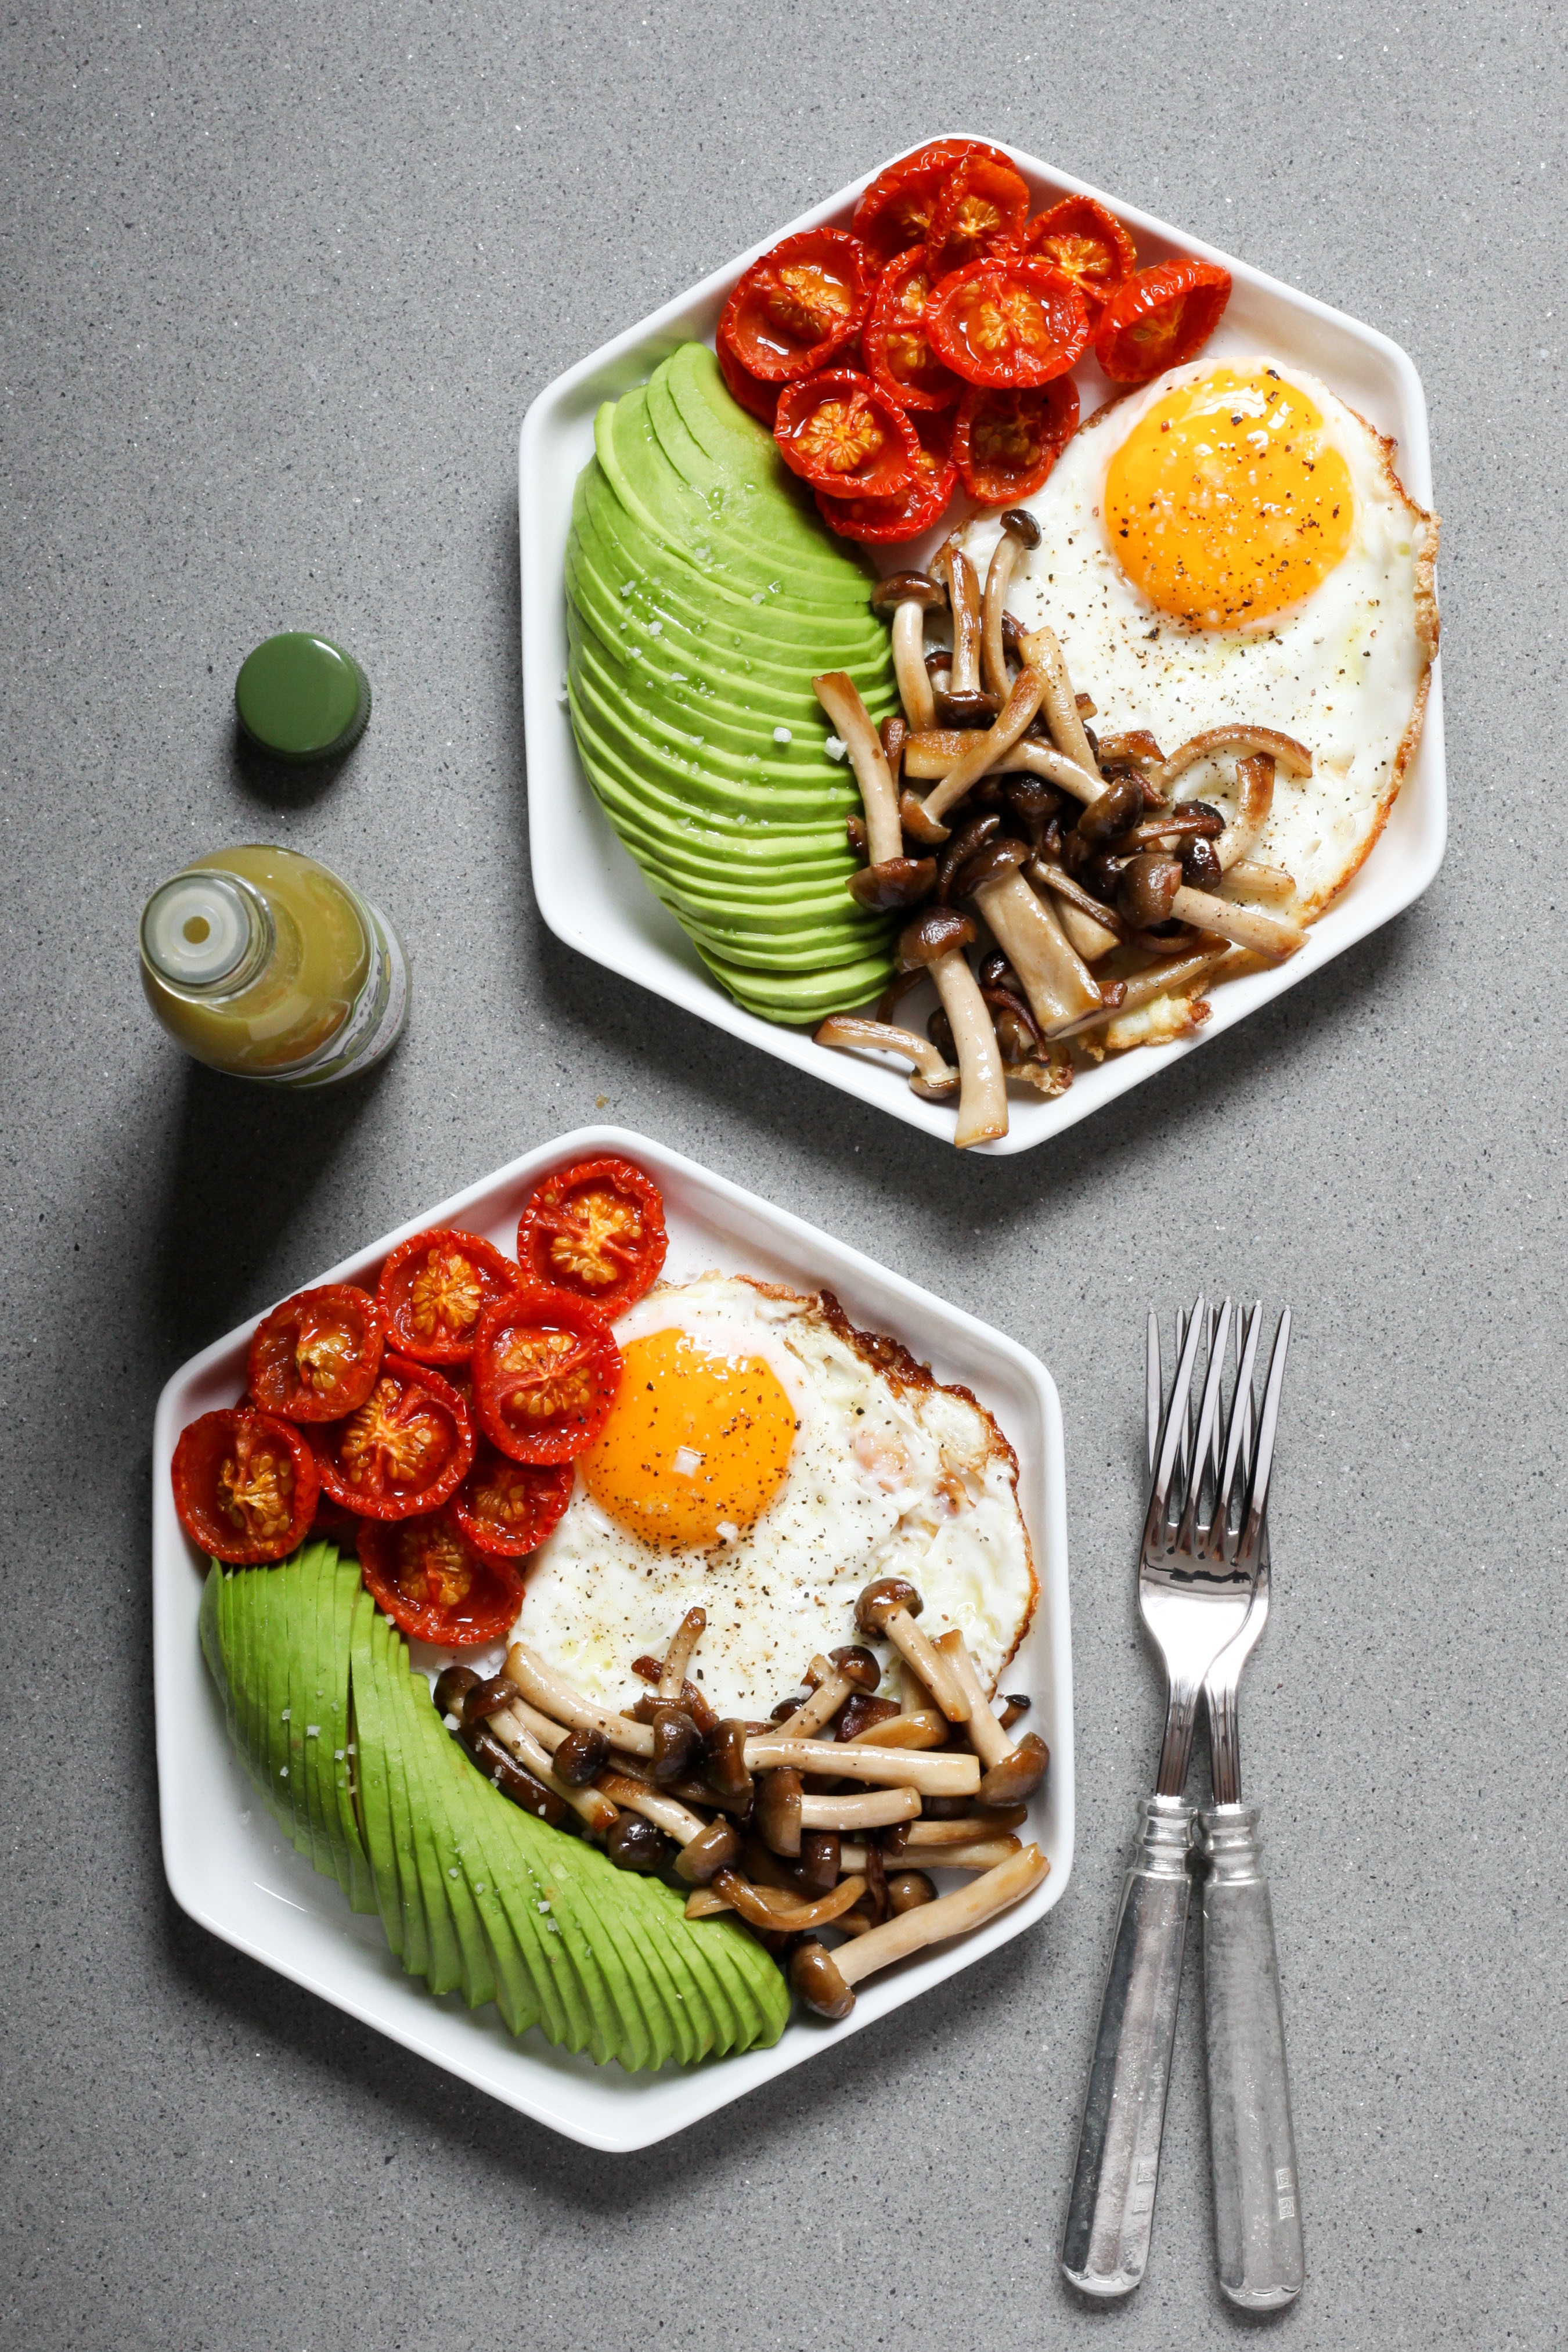 Crisp Fried Eggs With Slow-Roasted Tomatoes, Mushrooms, and Avocado | amodestfeast.com | @amodestfeast